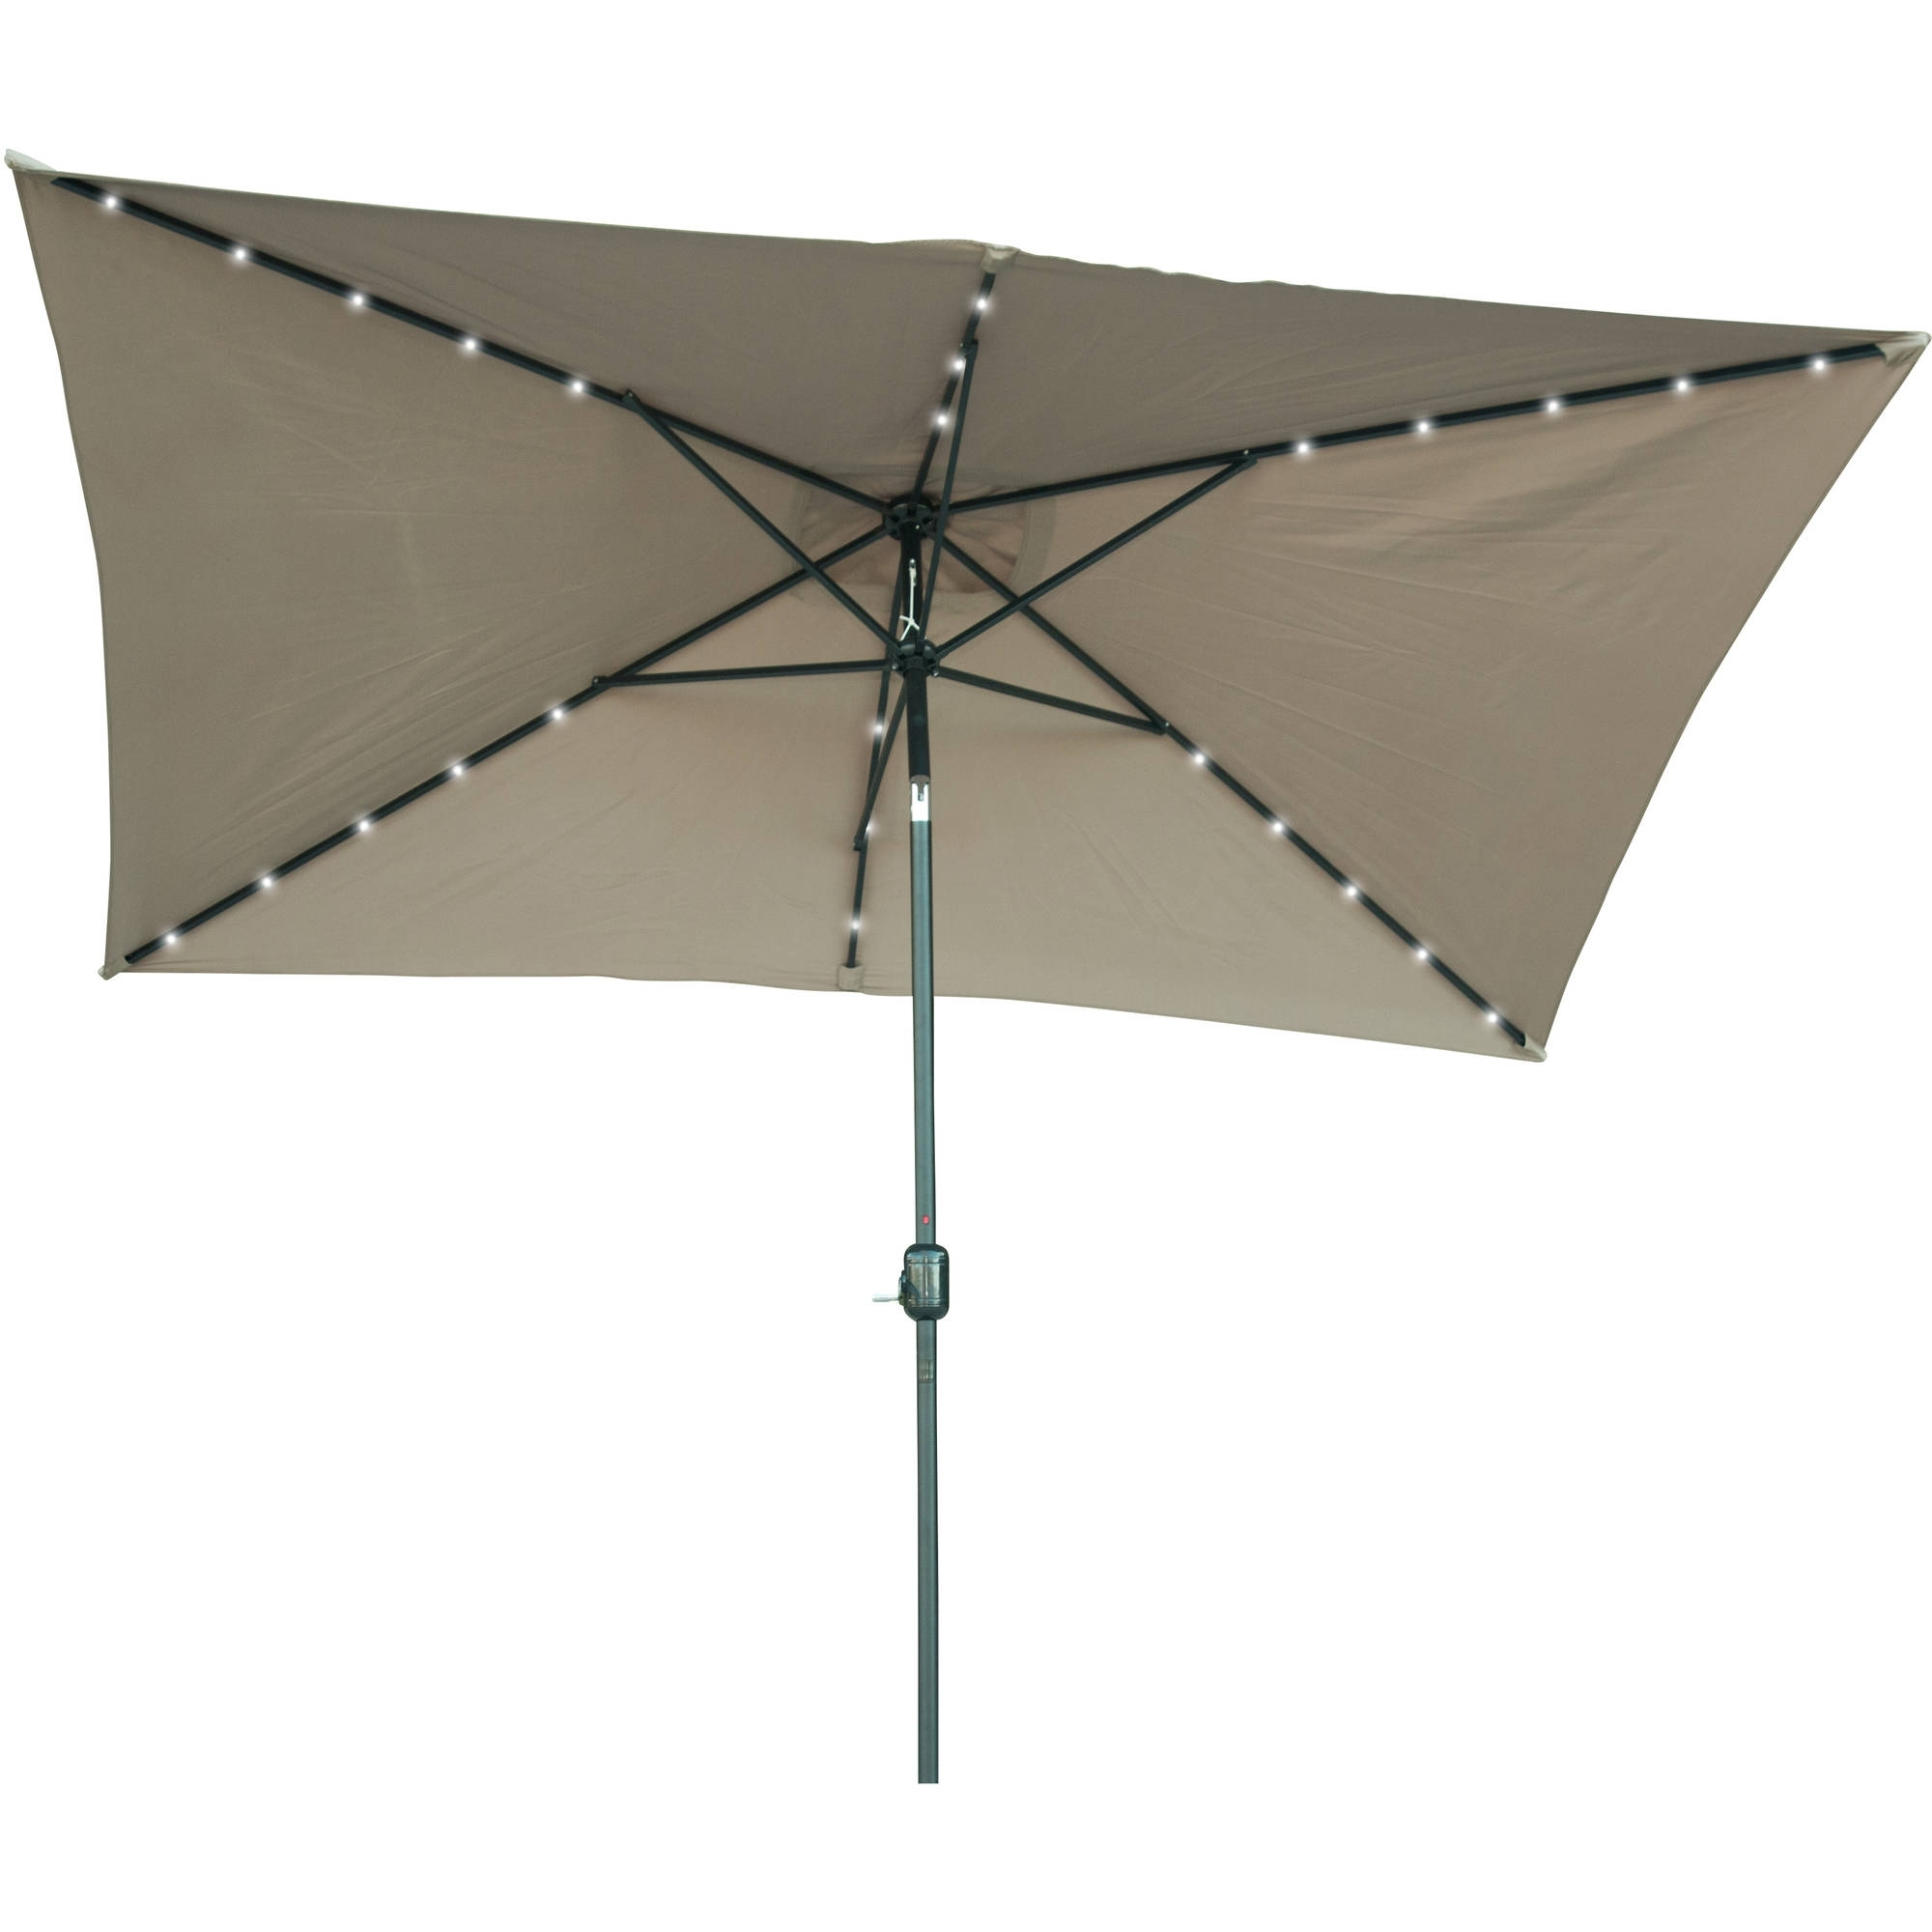 Black Patio Umbrellas Pertaining To Widely Used Rectangular Solar Powered Led Lighted Patio Umbrella – 10' X (View 20 of 20)